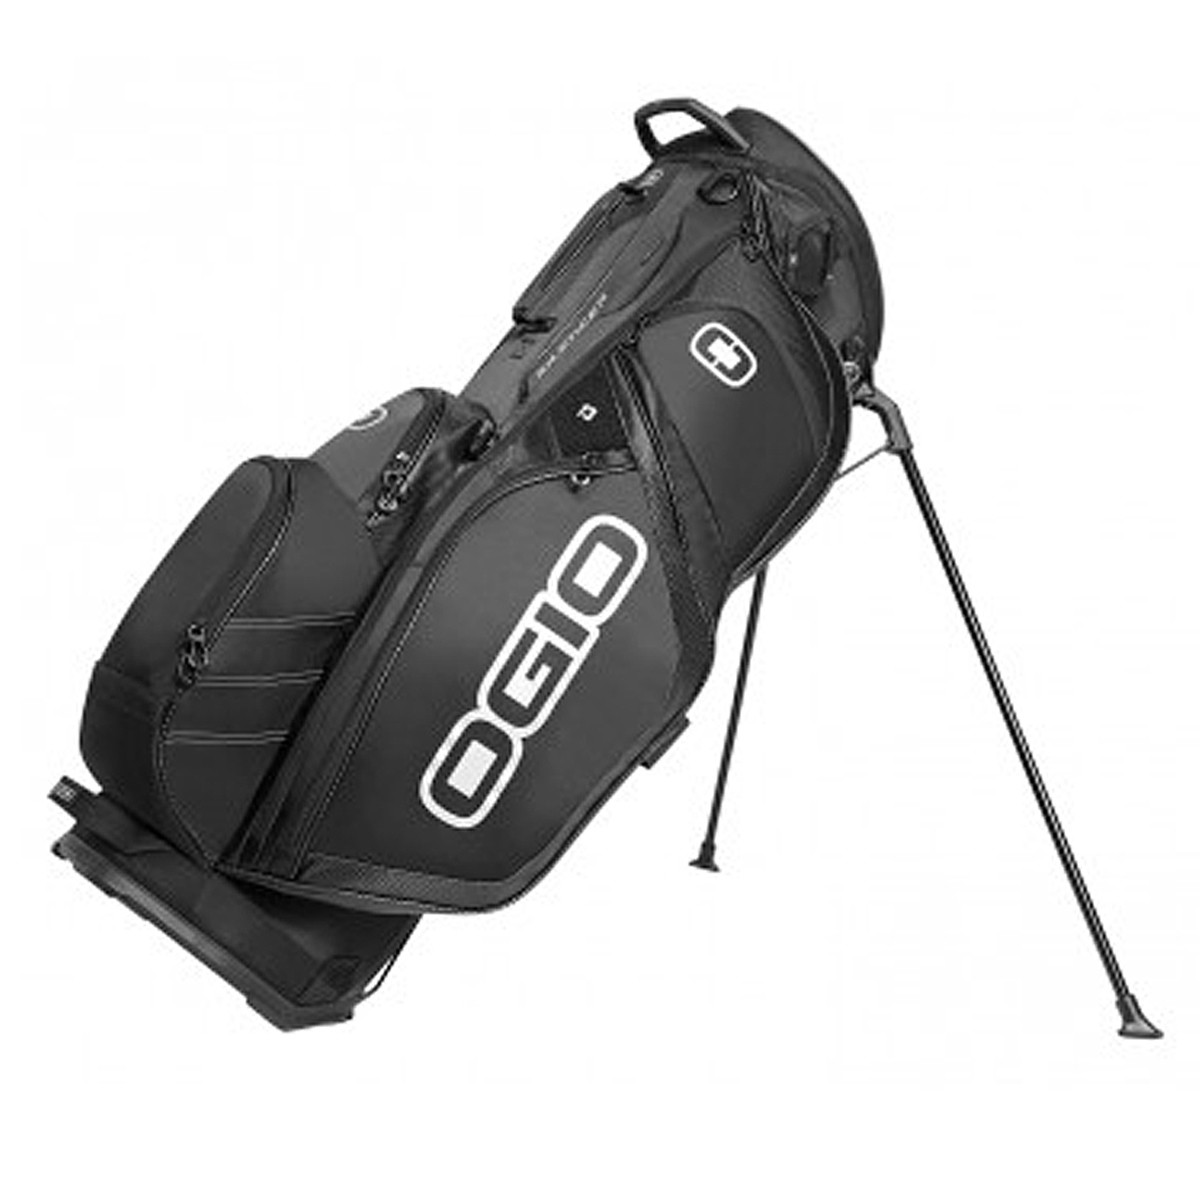 7 way golf stand bag bathtub drain parts diagram ogio silencer carry 14 divider ebay